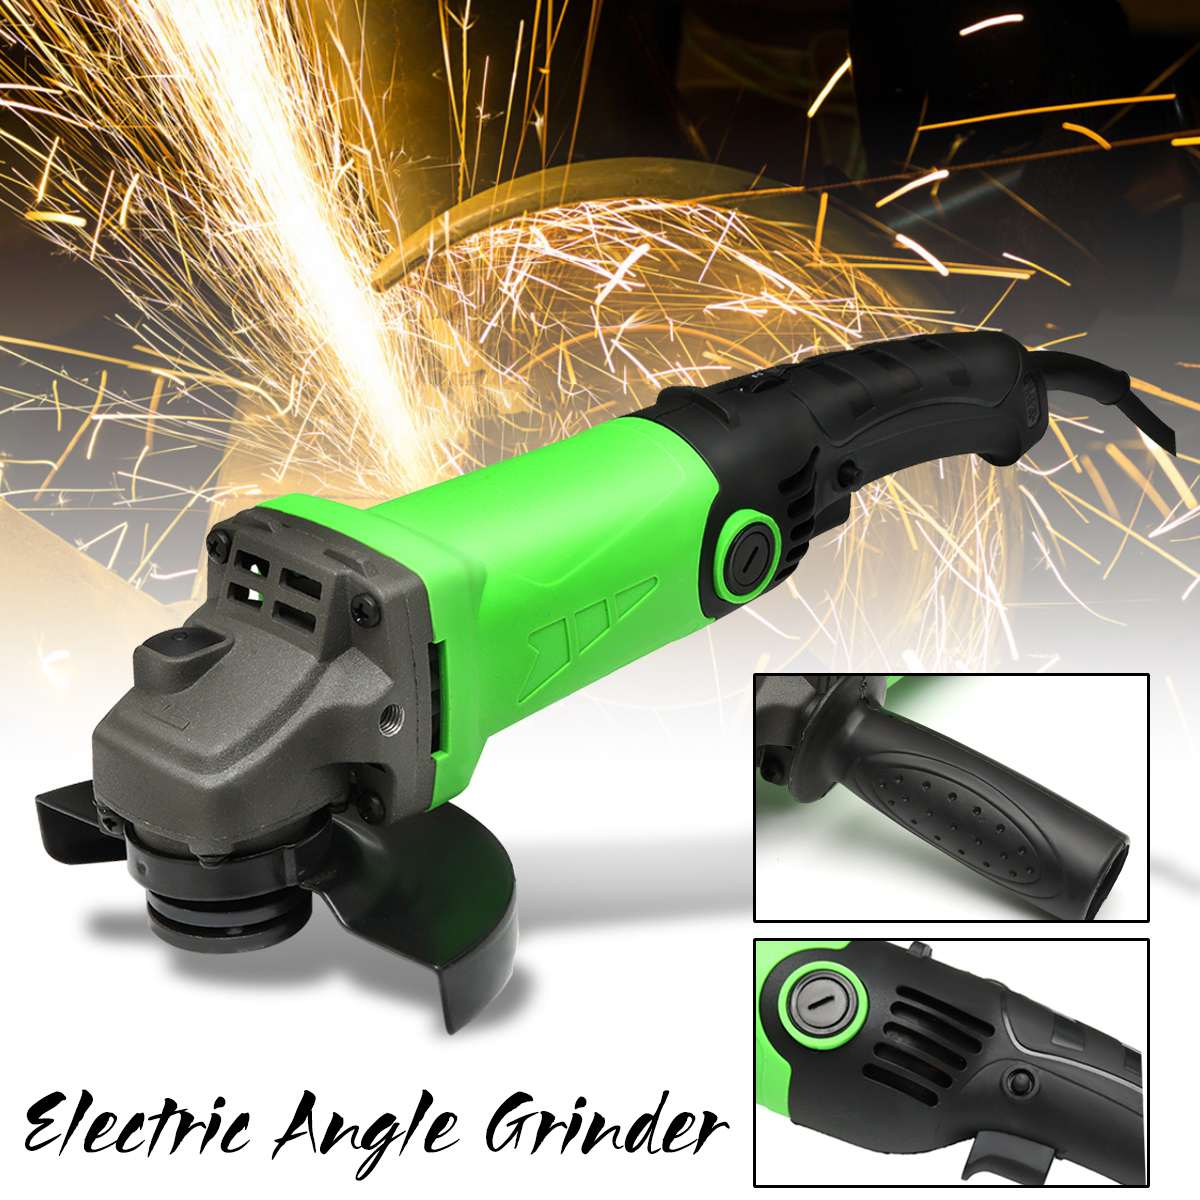 1Pcs 1200W  Multi-function  Angle Grinder 6 Levels Speed Adjustable Polishing Machine Refit Angle Grind Grinding  Drilling Tools1Pcs 1200W  Multi-function  Angle Grinder 6 Levels Speed Adjustable Polishing Machine Refit Angle Grind Grinding  Drilling Tools